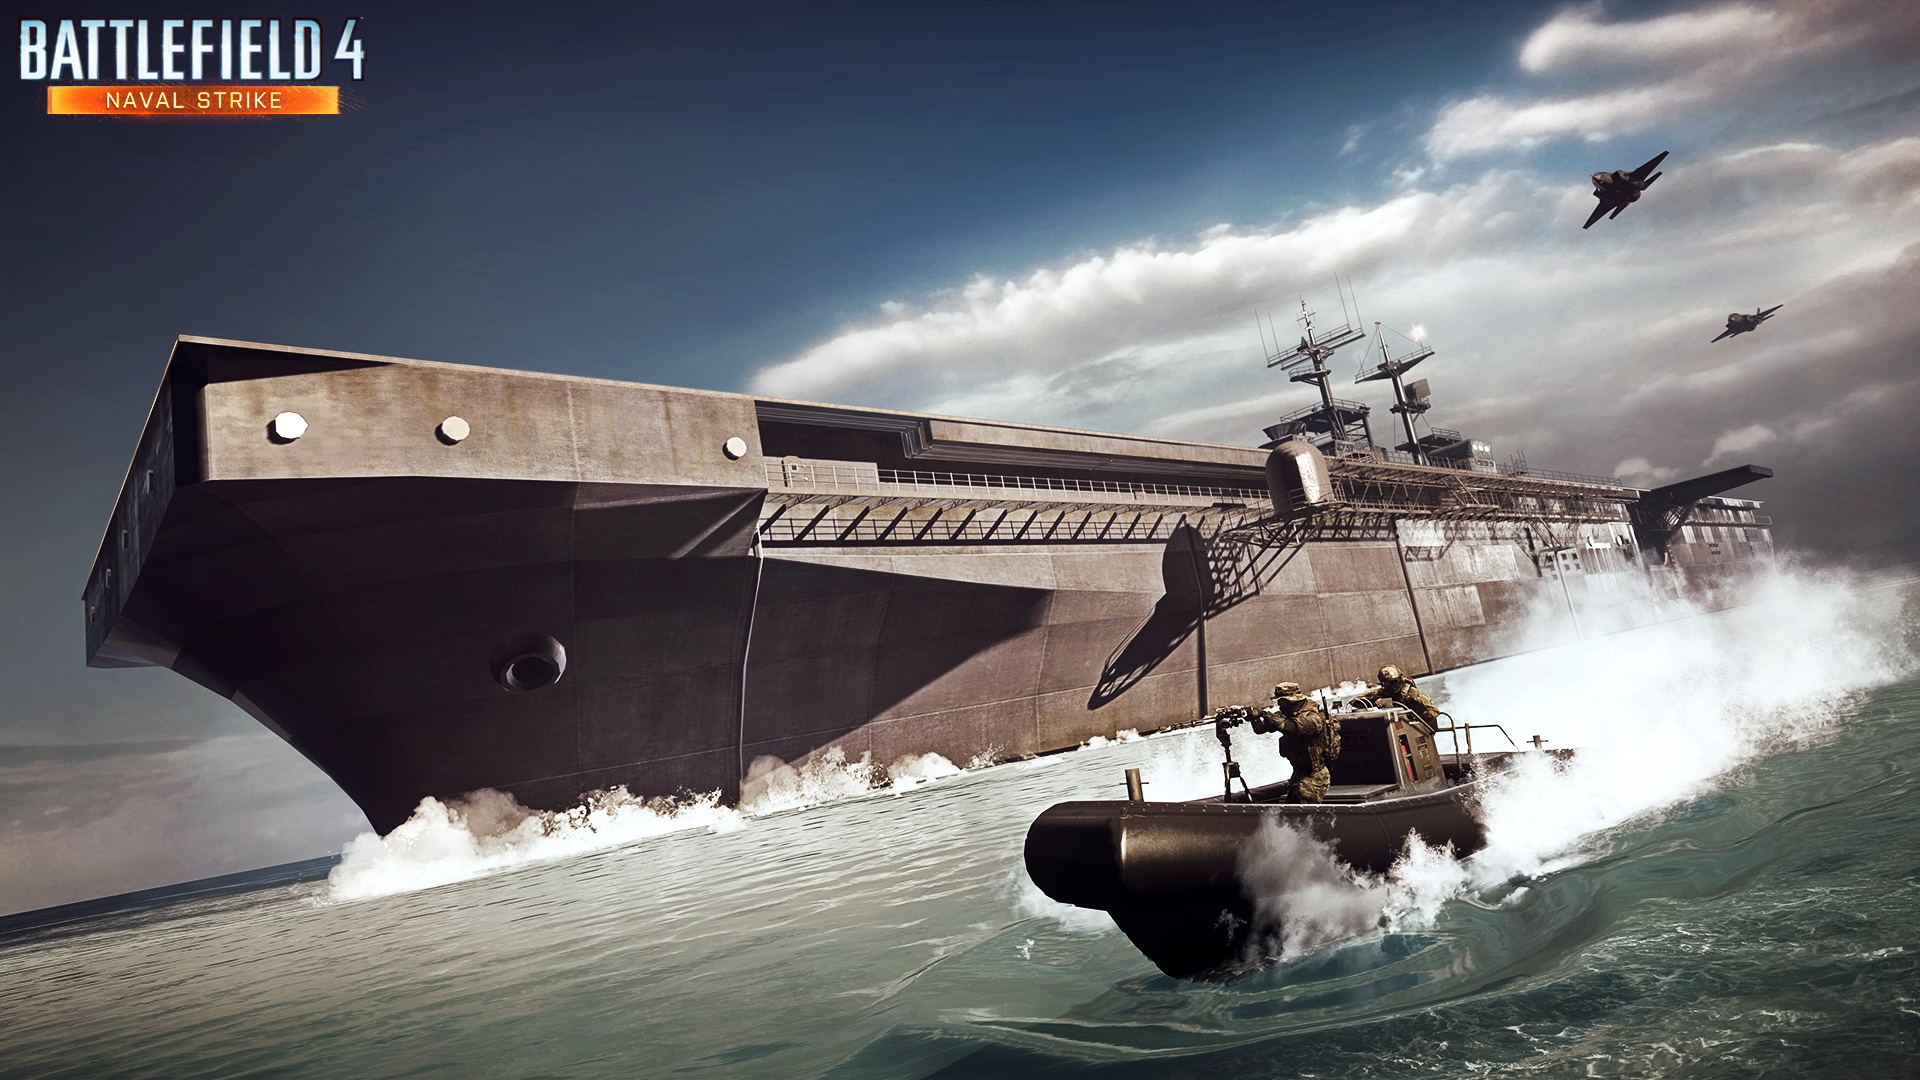 Battlefield 4 Naval Strike DLC rolling out on PC today